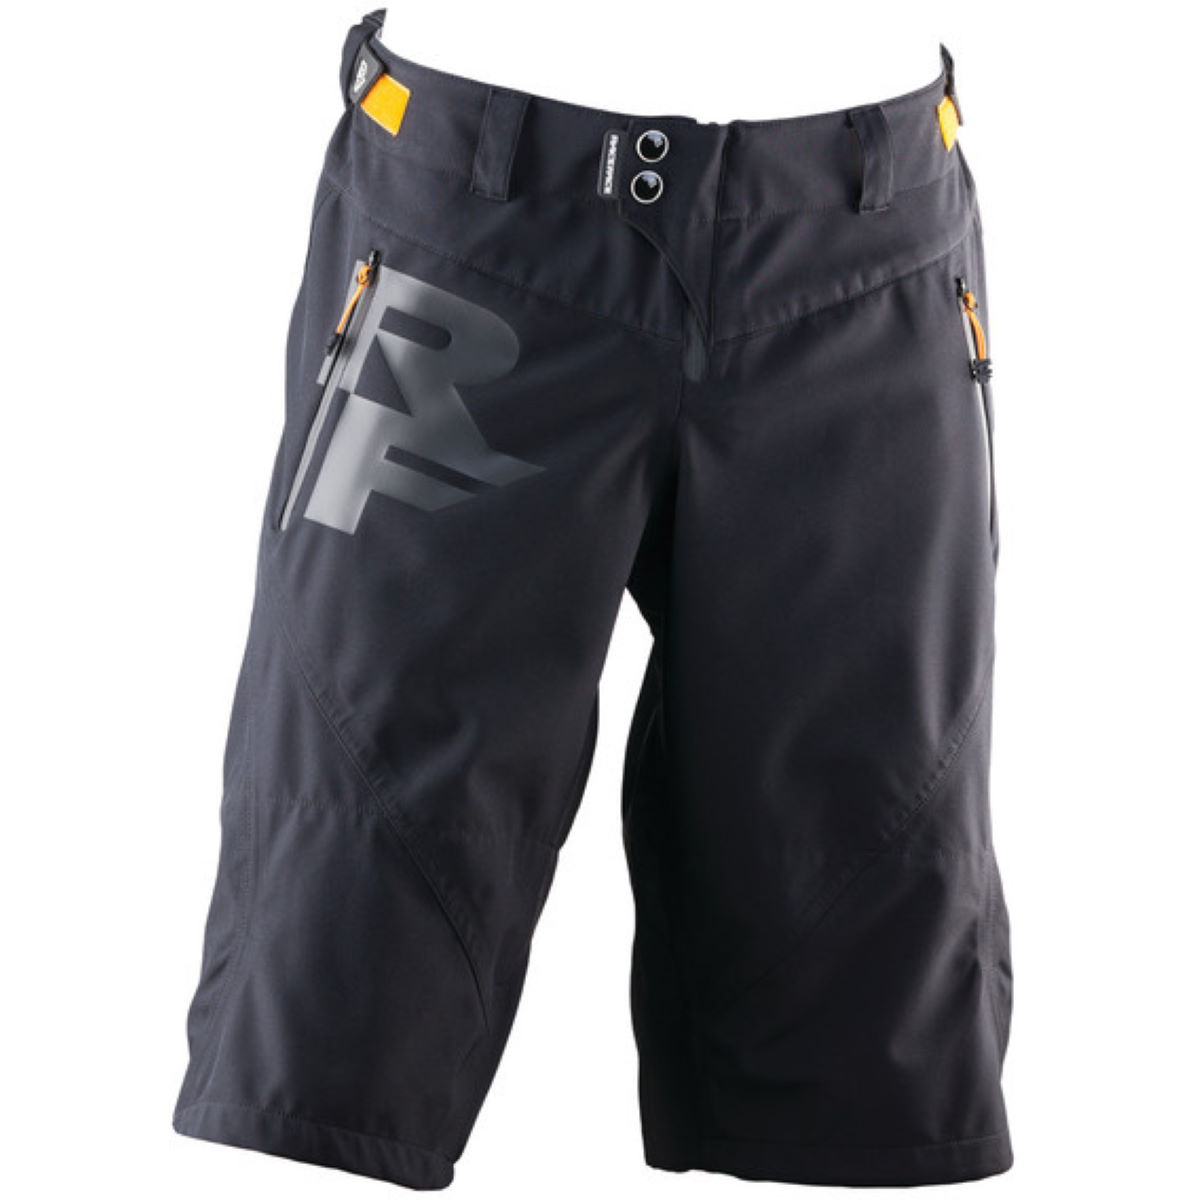 Short Race Face Agent (hiver) - M Noir Shorts amples